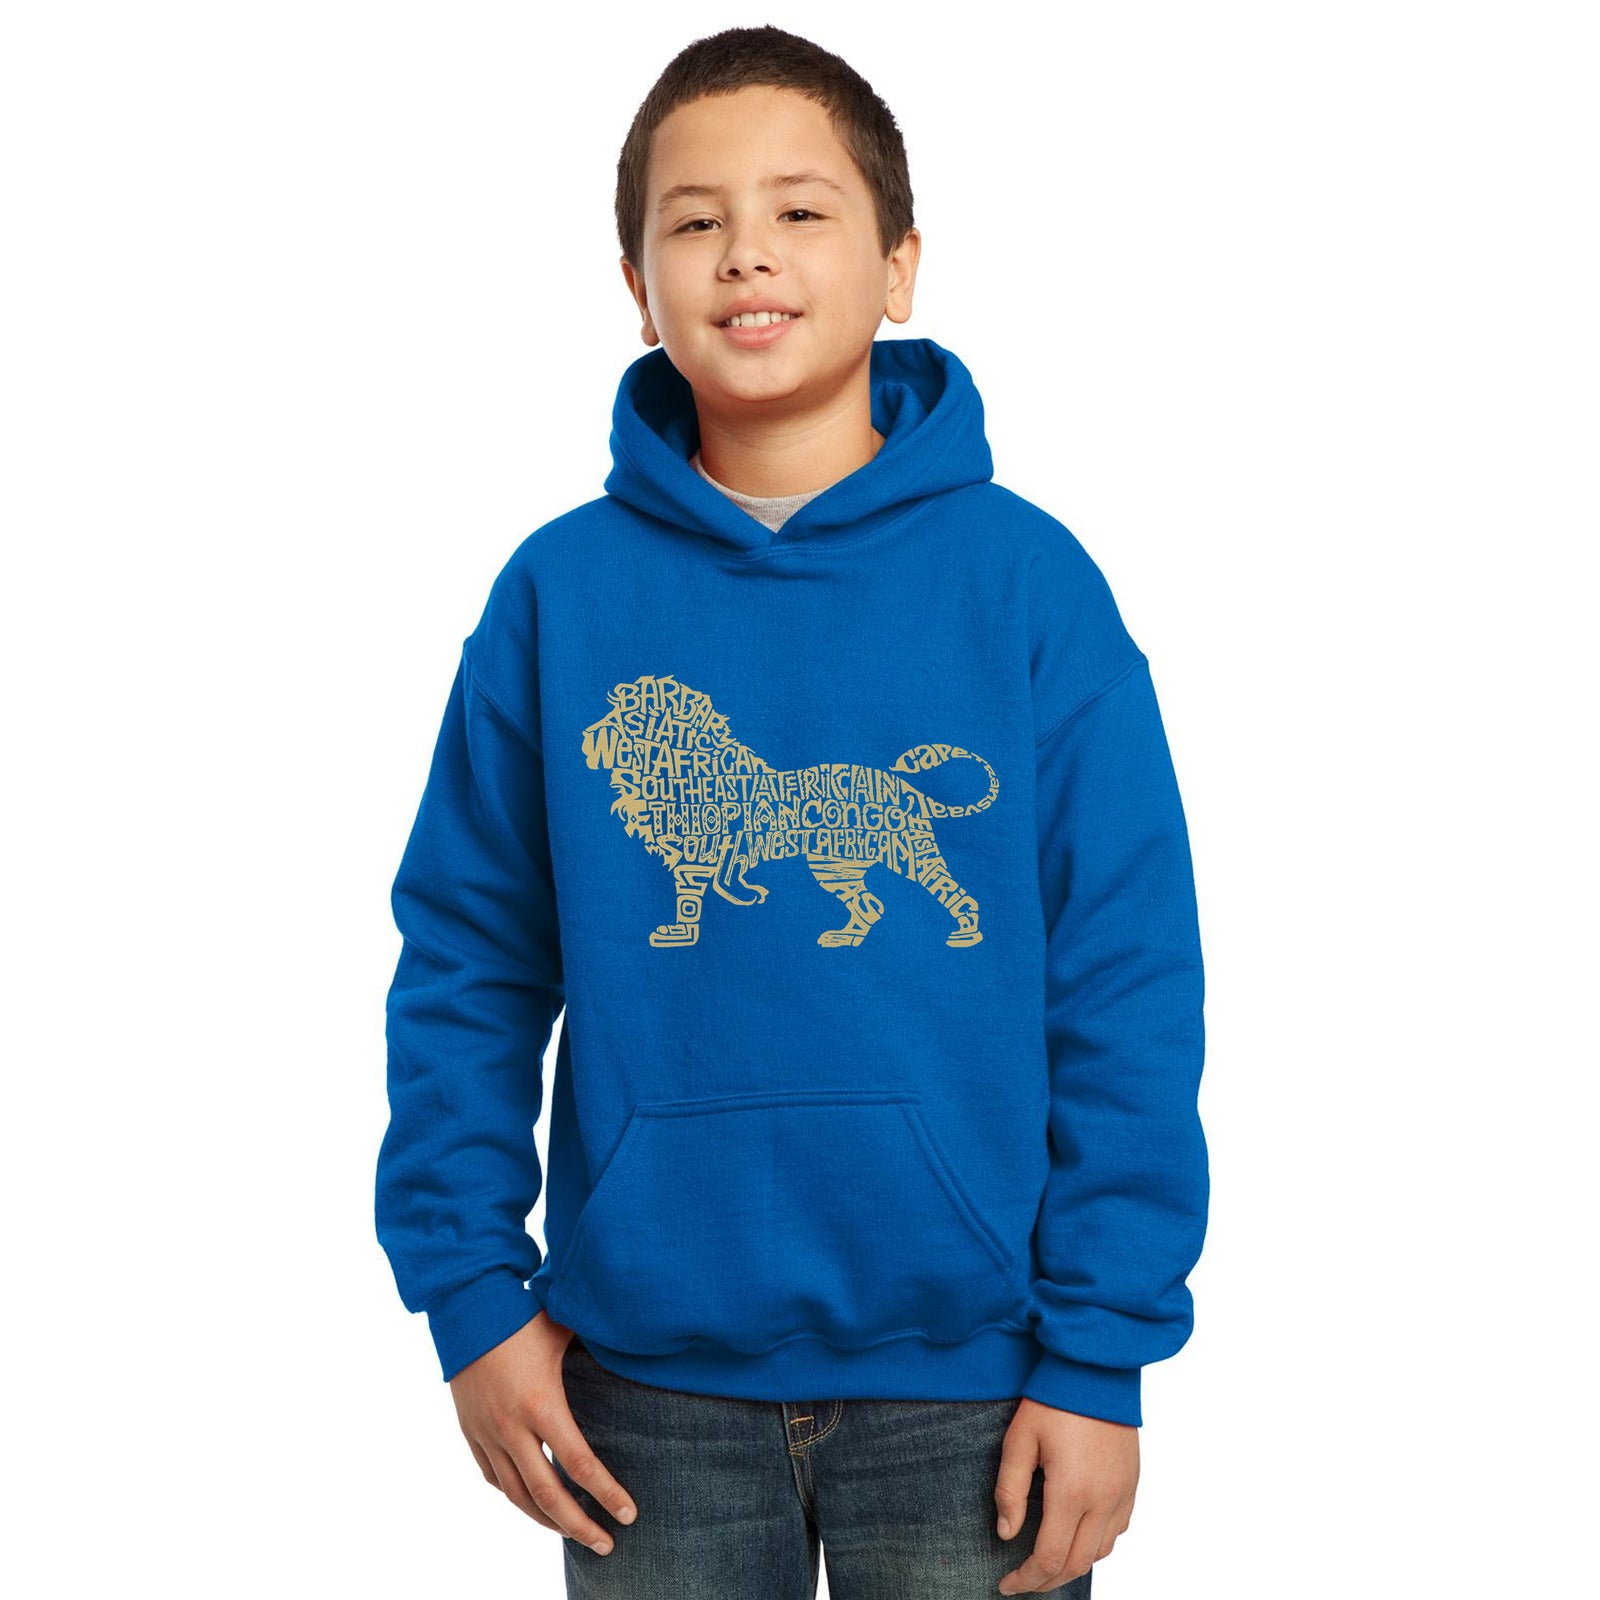 Boy's Word Art Hooded Sweatshirt - Lion